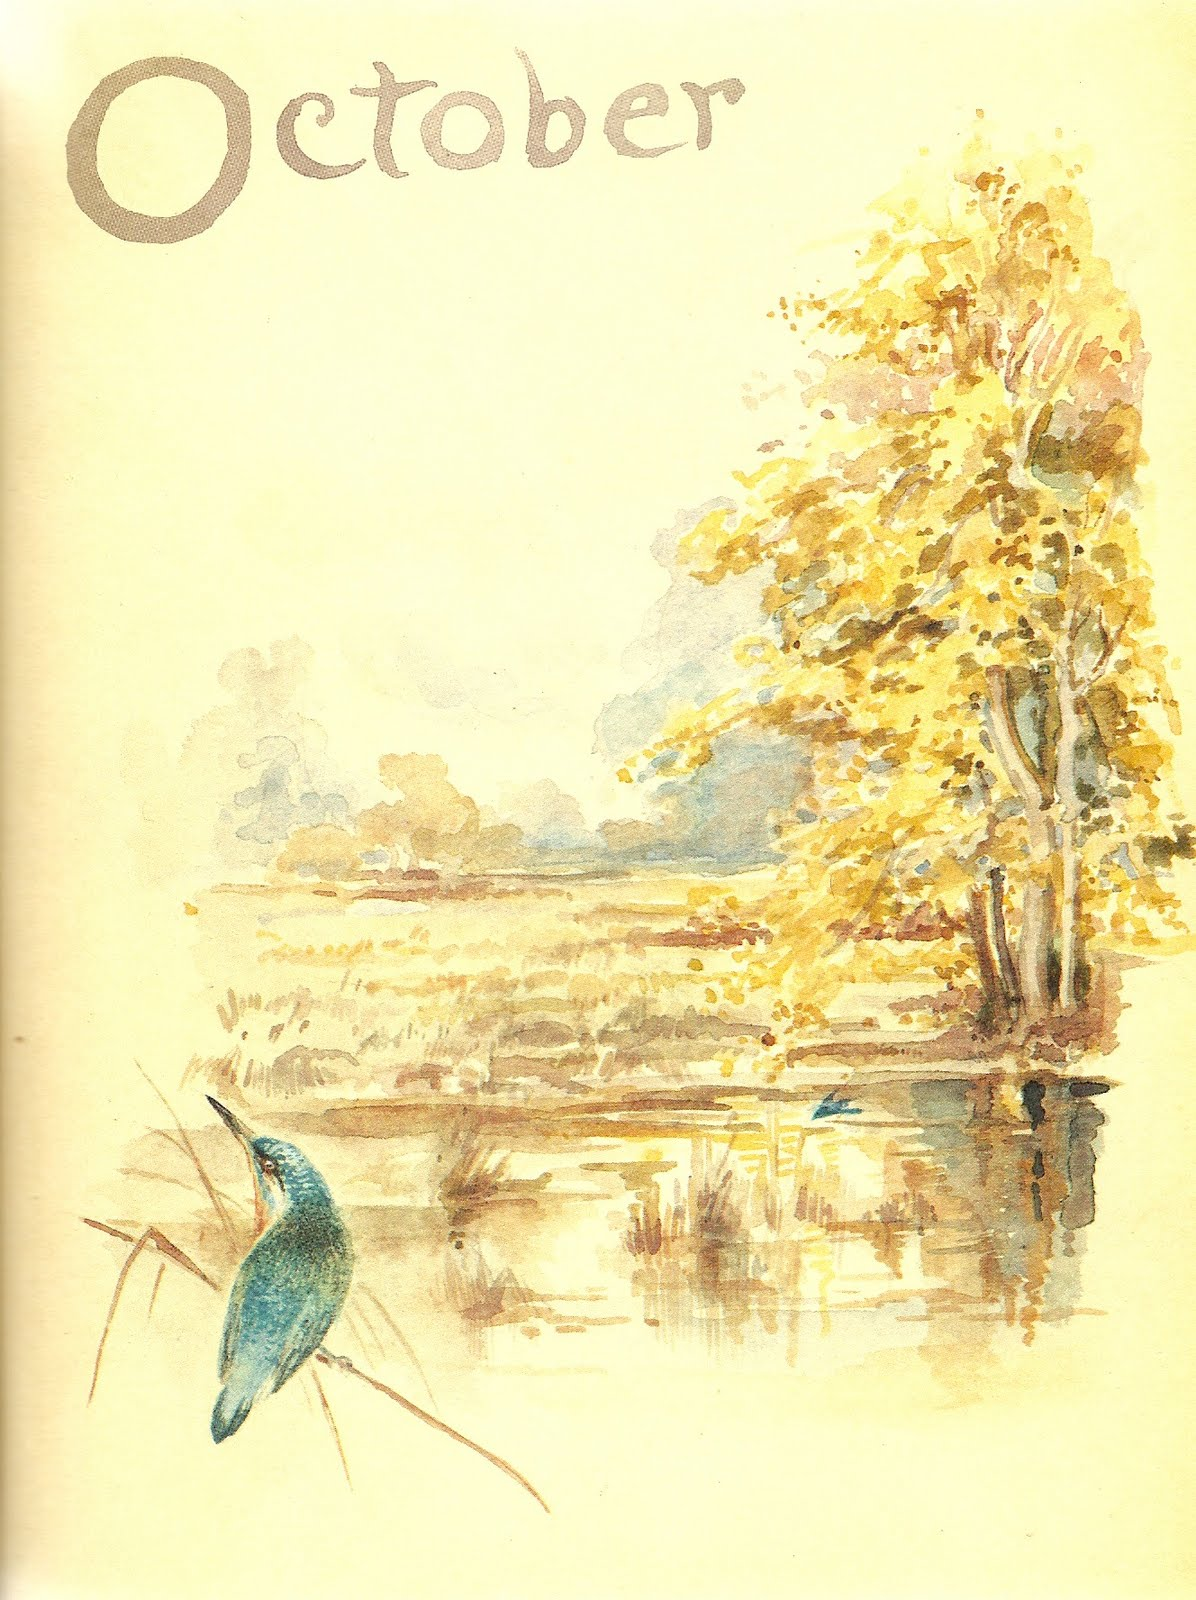 October by Edith Holden